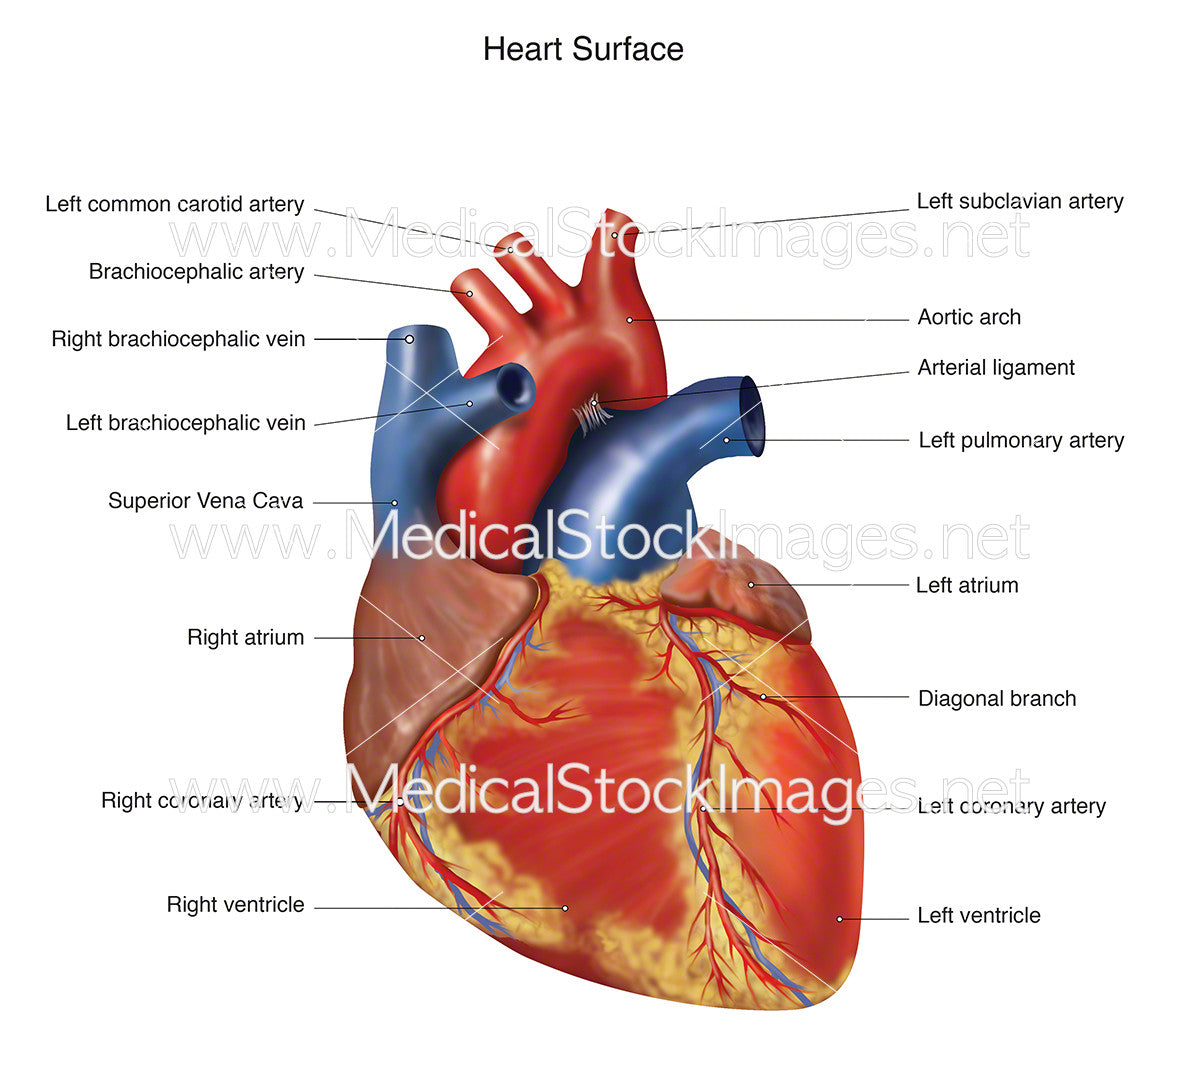 Heart Surface Medical Stock Images Company